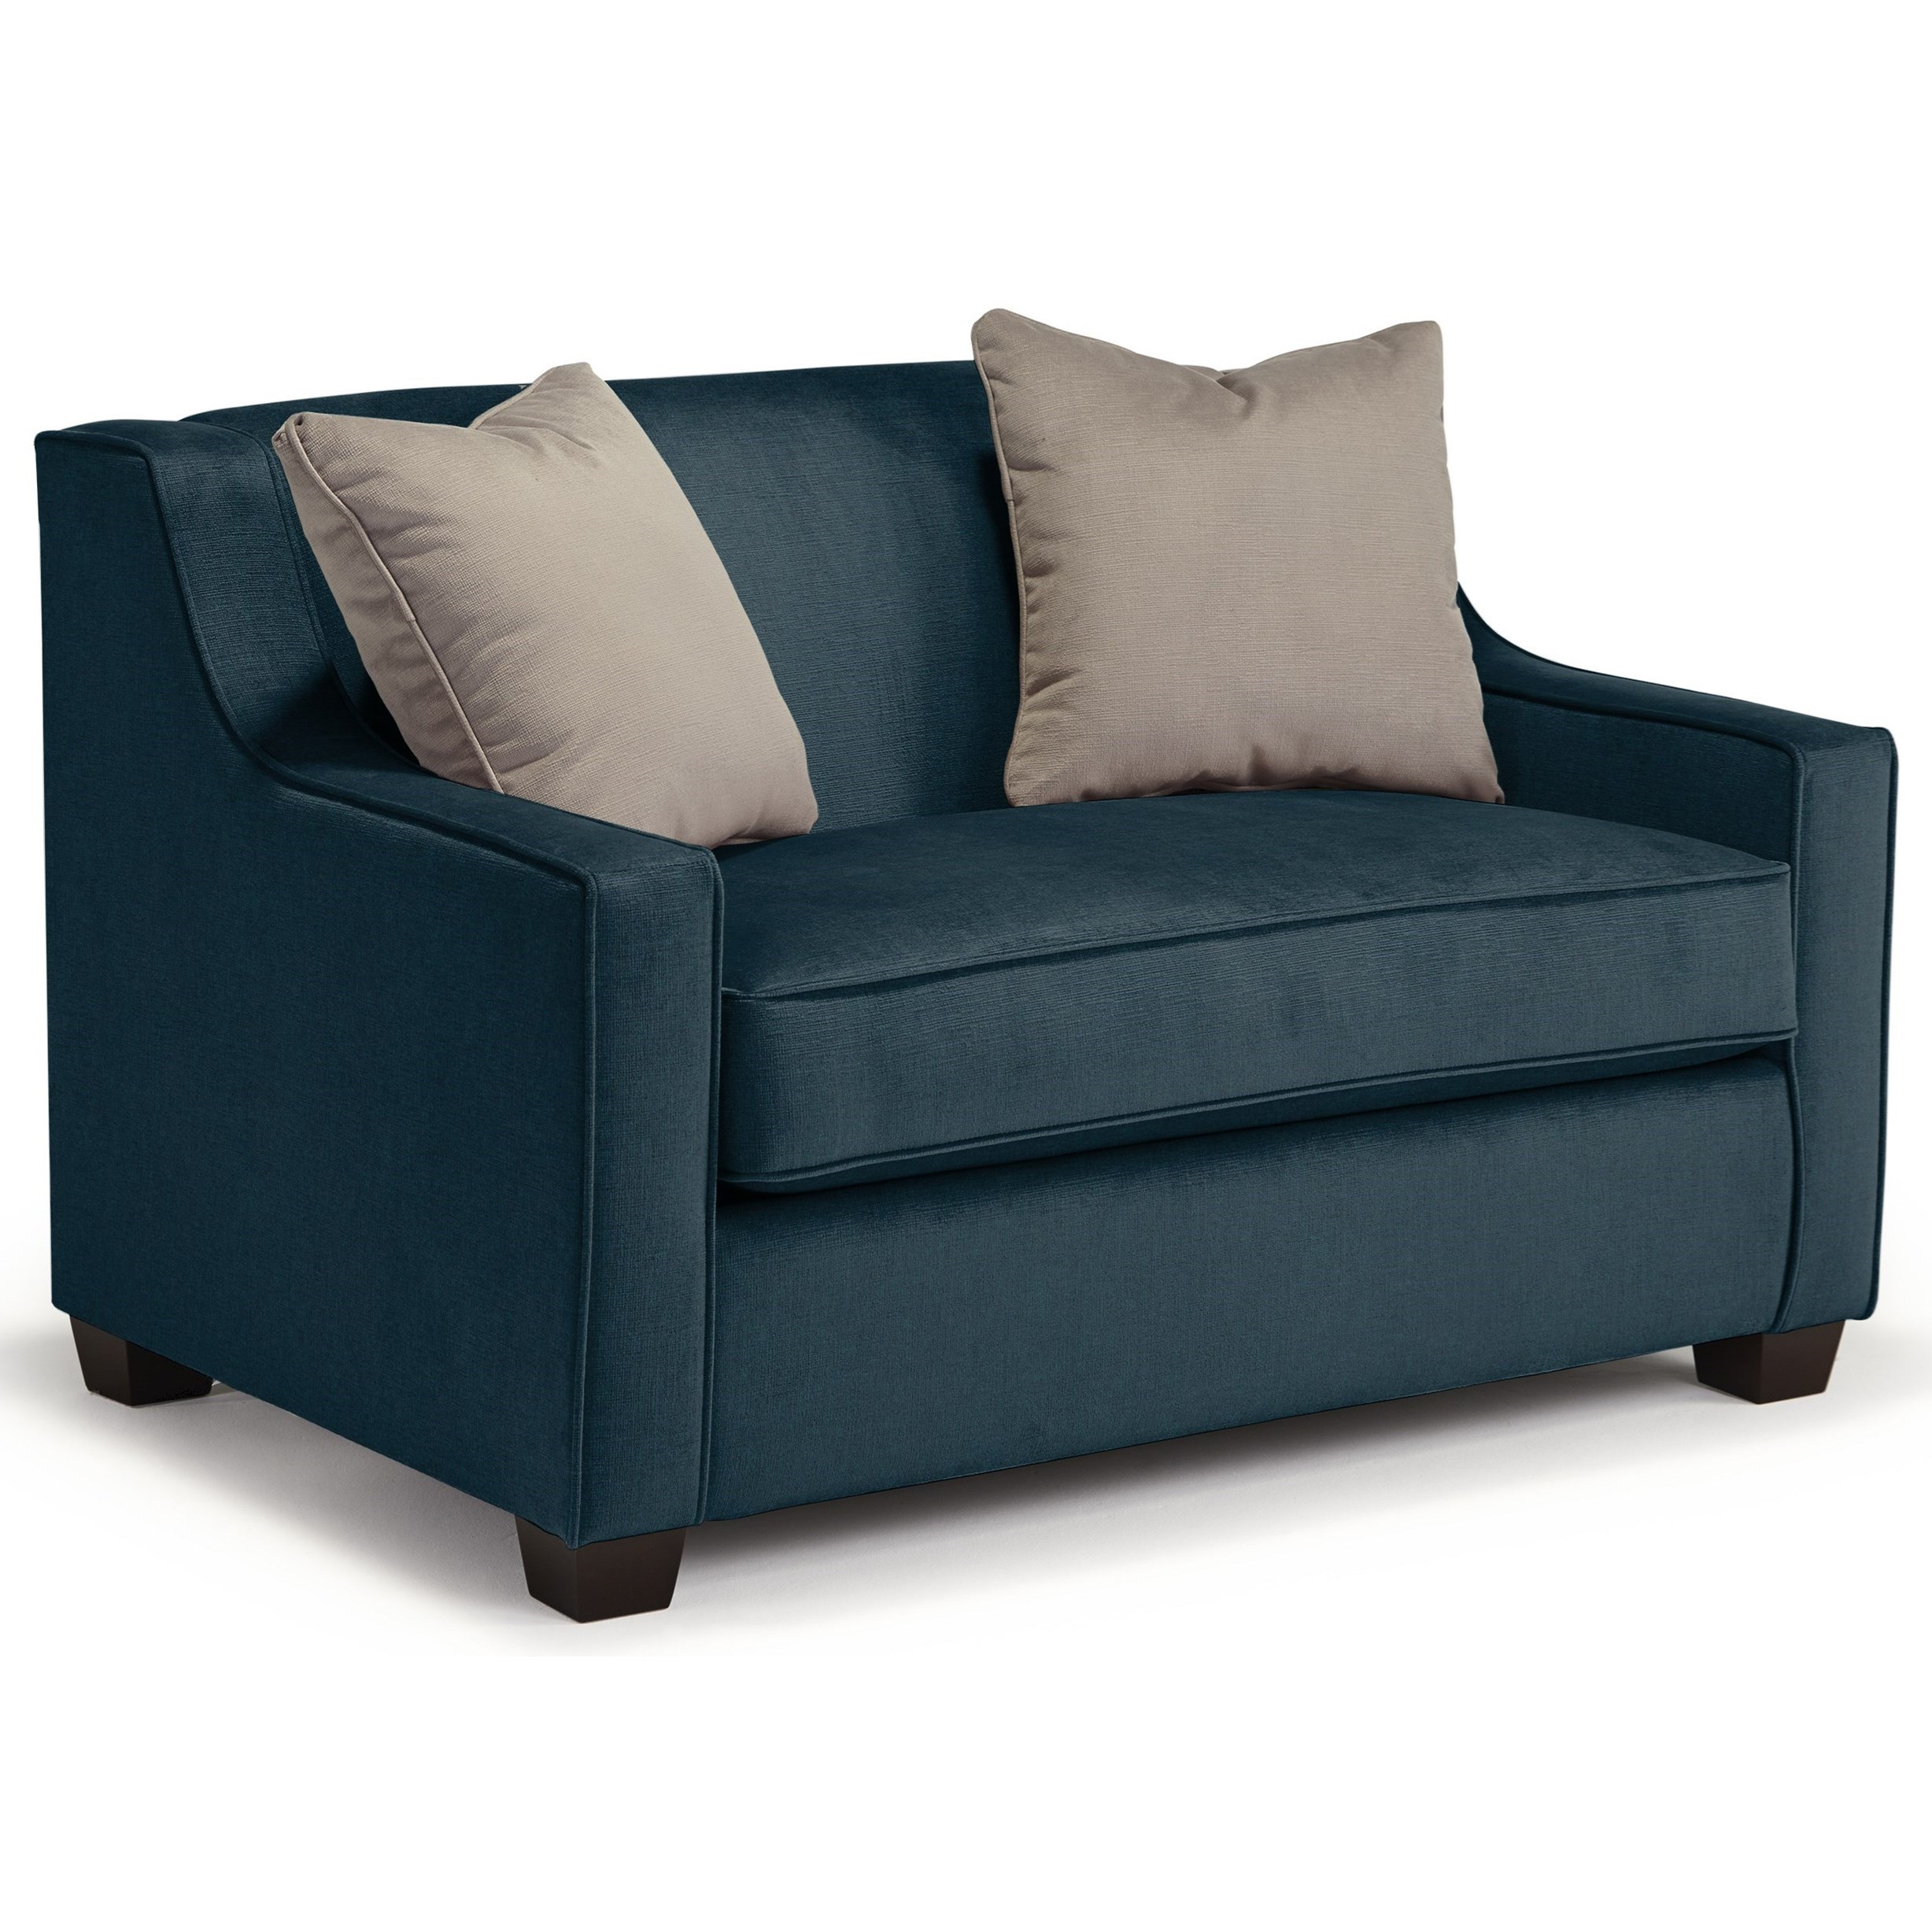 Best Home Furnishings Marinette Twin Size Air Dream